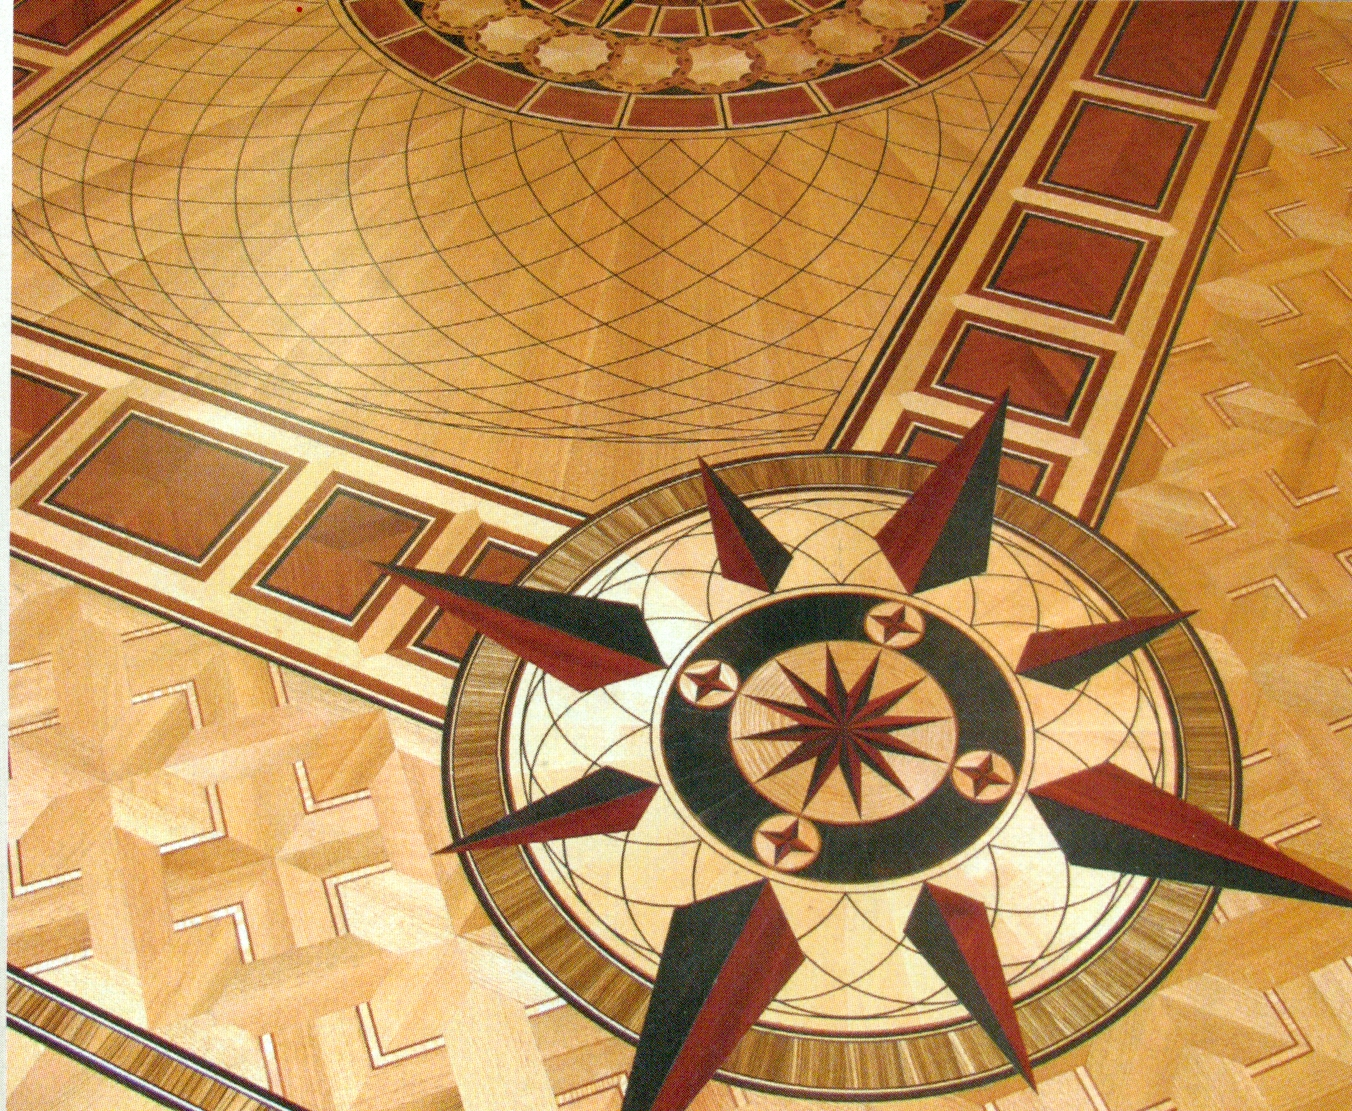 Hardwood Floor Inlays residential hardwood floor borders and inlays click to enlarge Parquetinlaysmedallions In A Very Custom Wood Floor